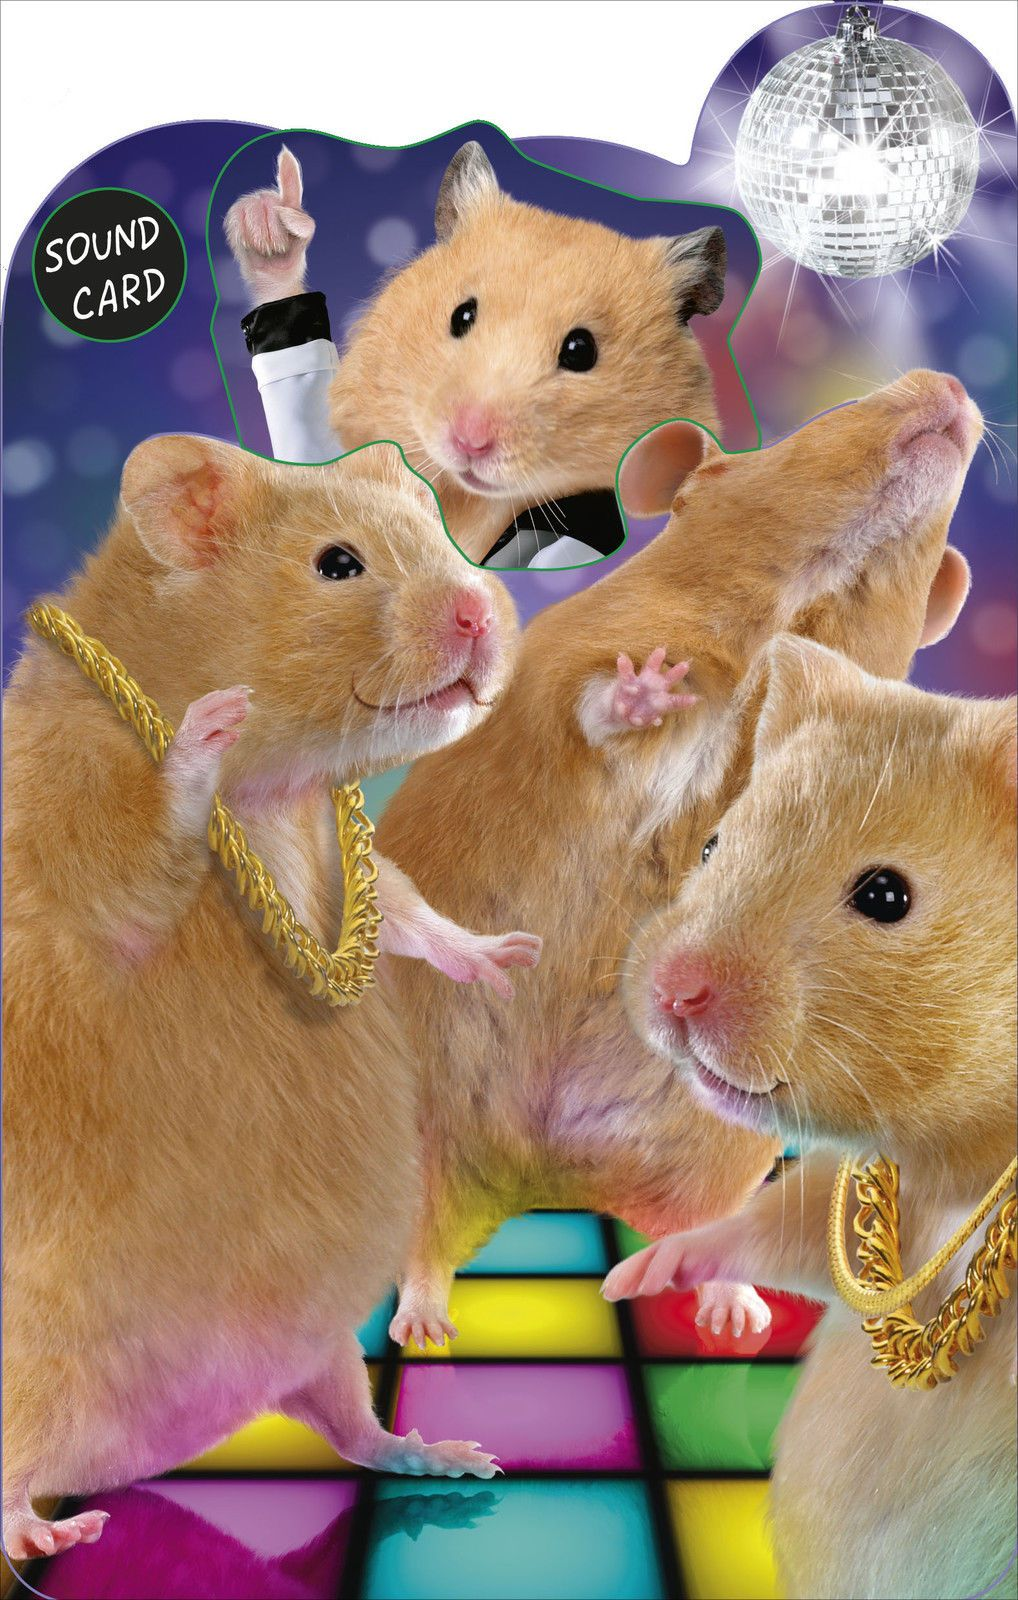 Funny Pull Out Hamsters Birthday Sound Card Noisy Inventions